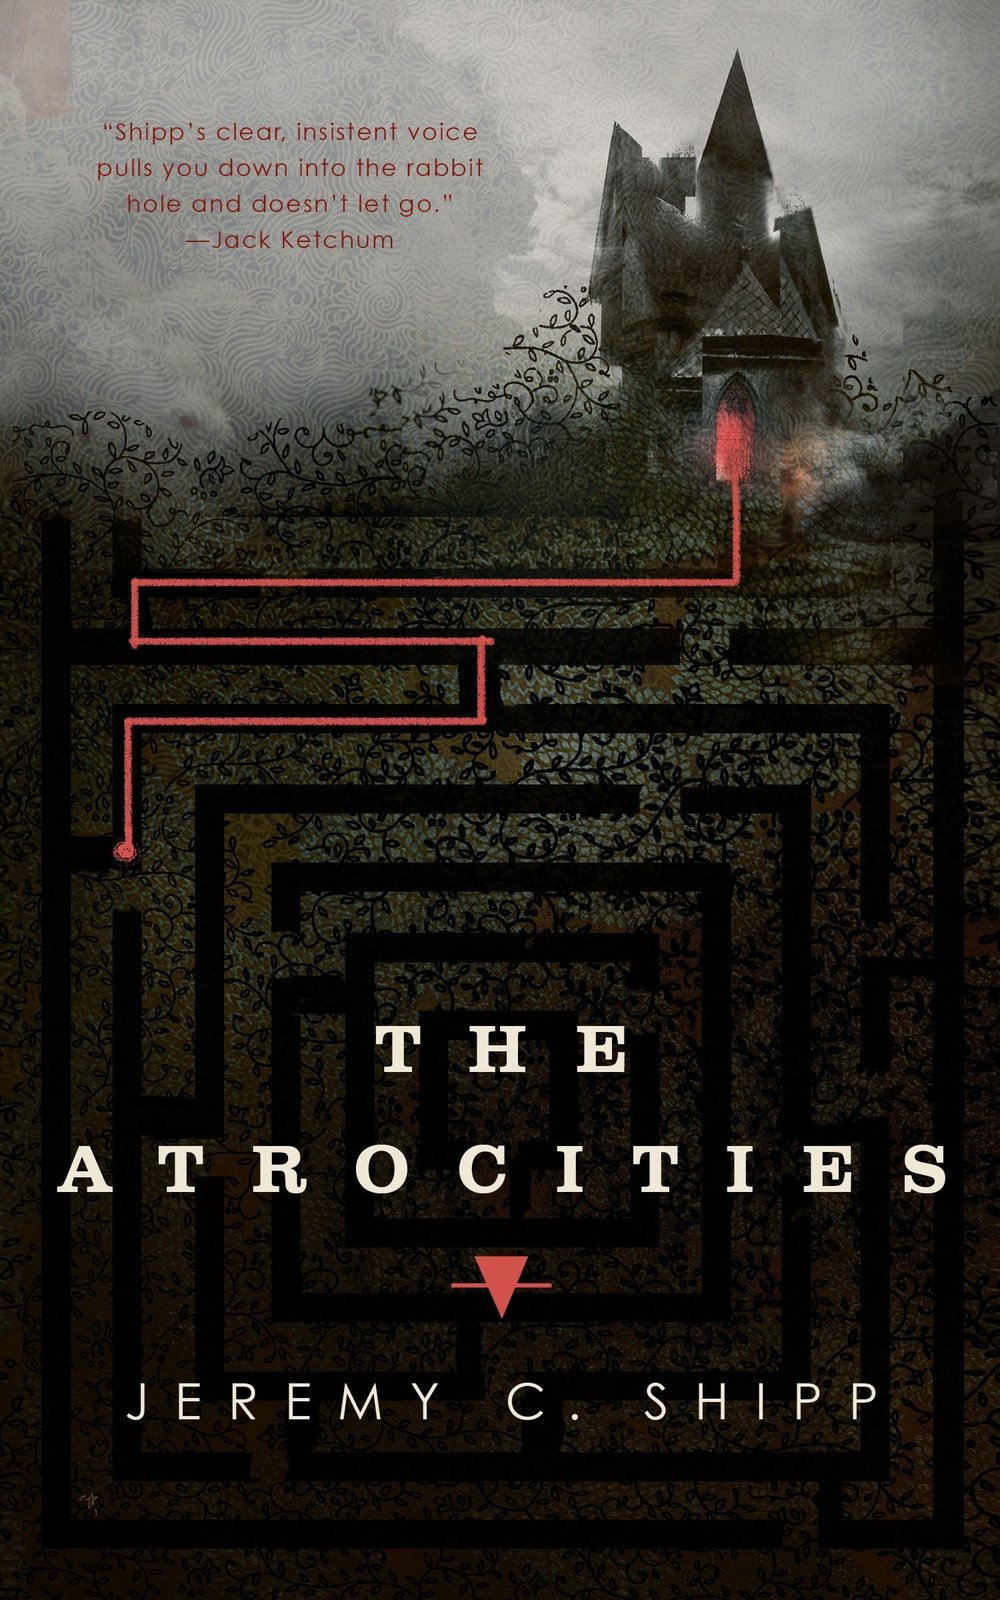 The-Atrocities-by-Jeremy-C.-Shipp.jpg